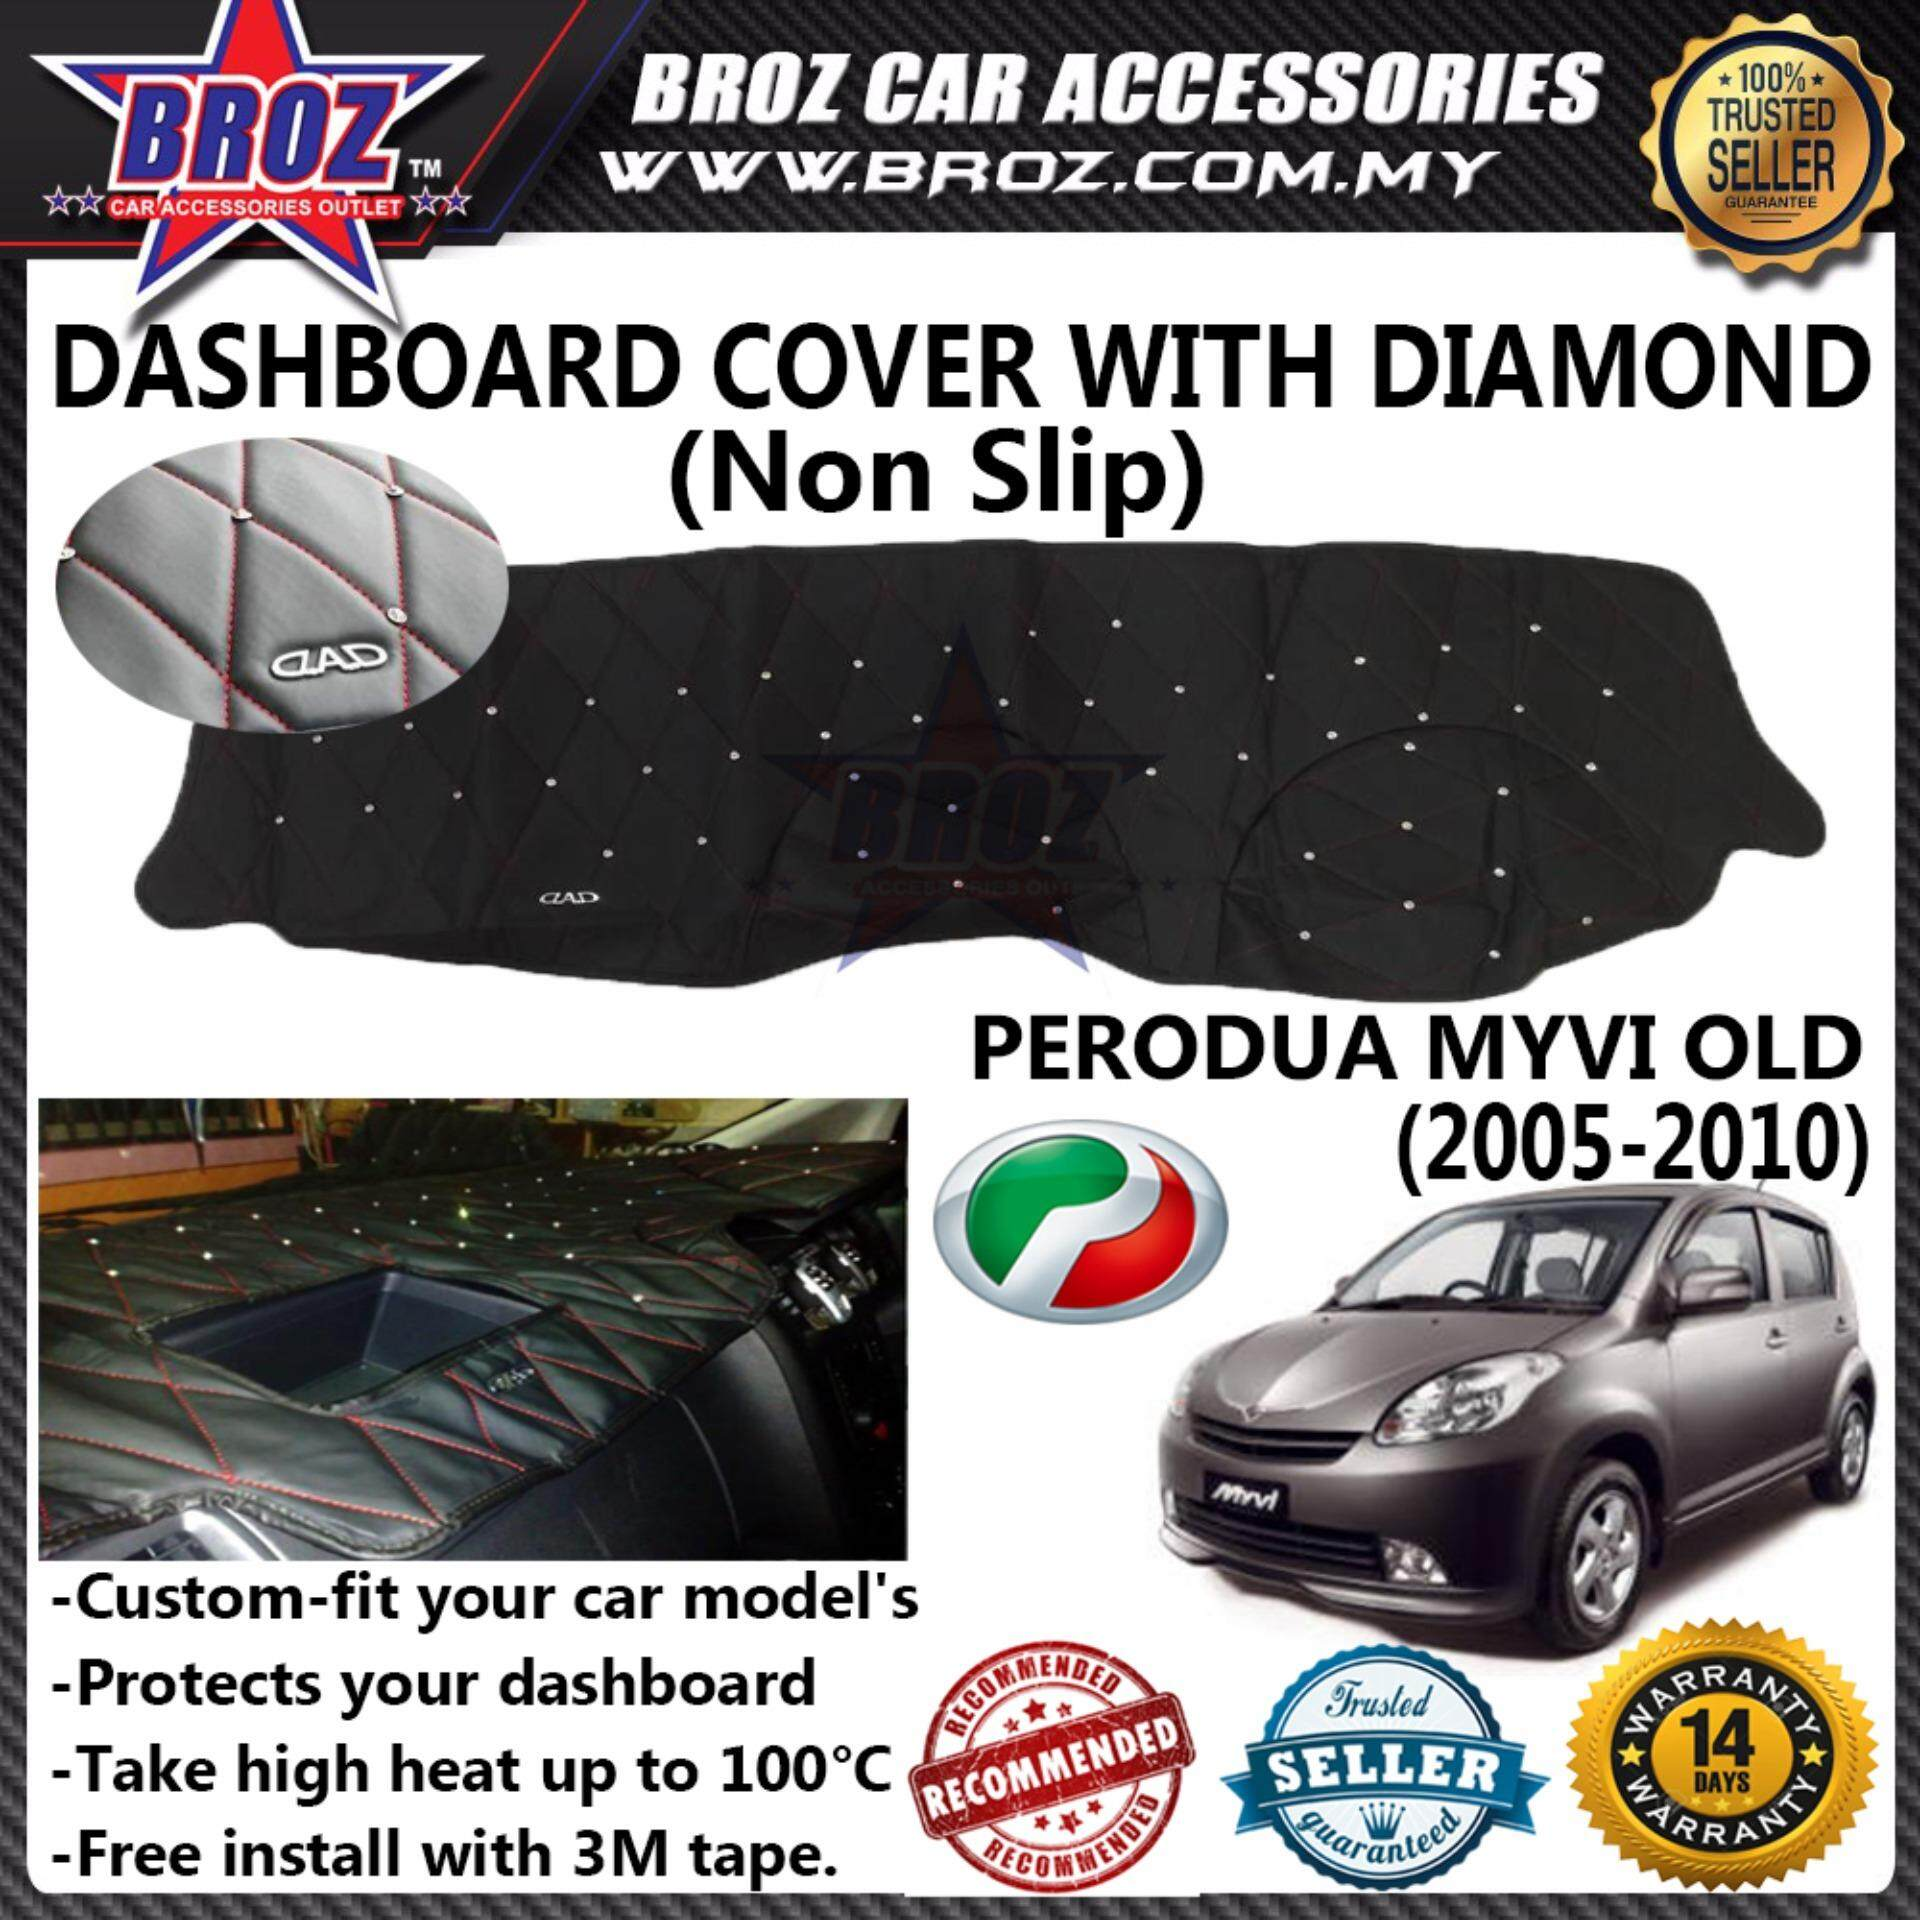 Non Slip Dashboard Cover with diamond for Perodua Myvi Old 2005-2010